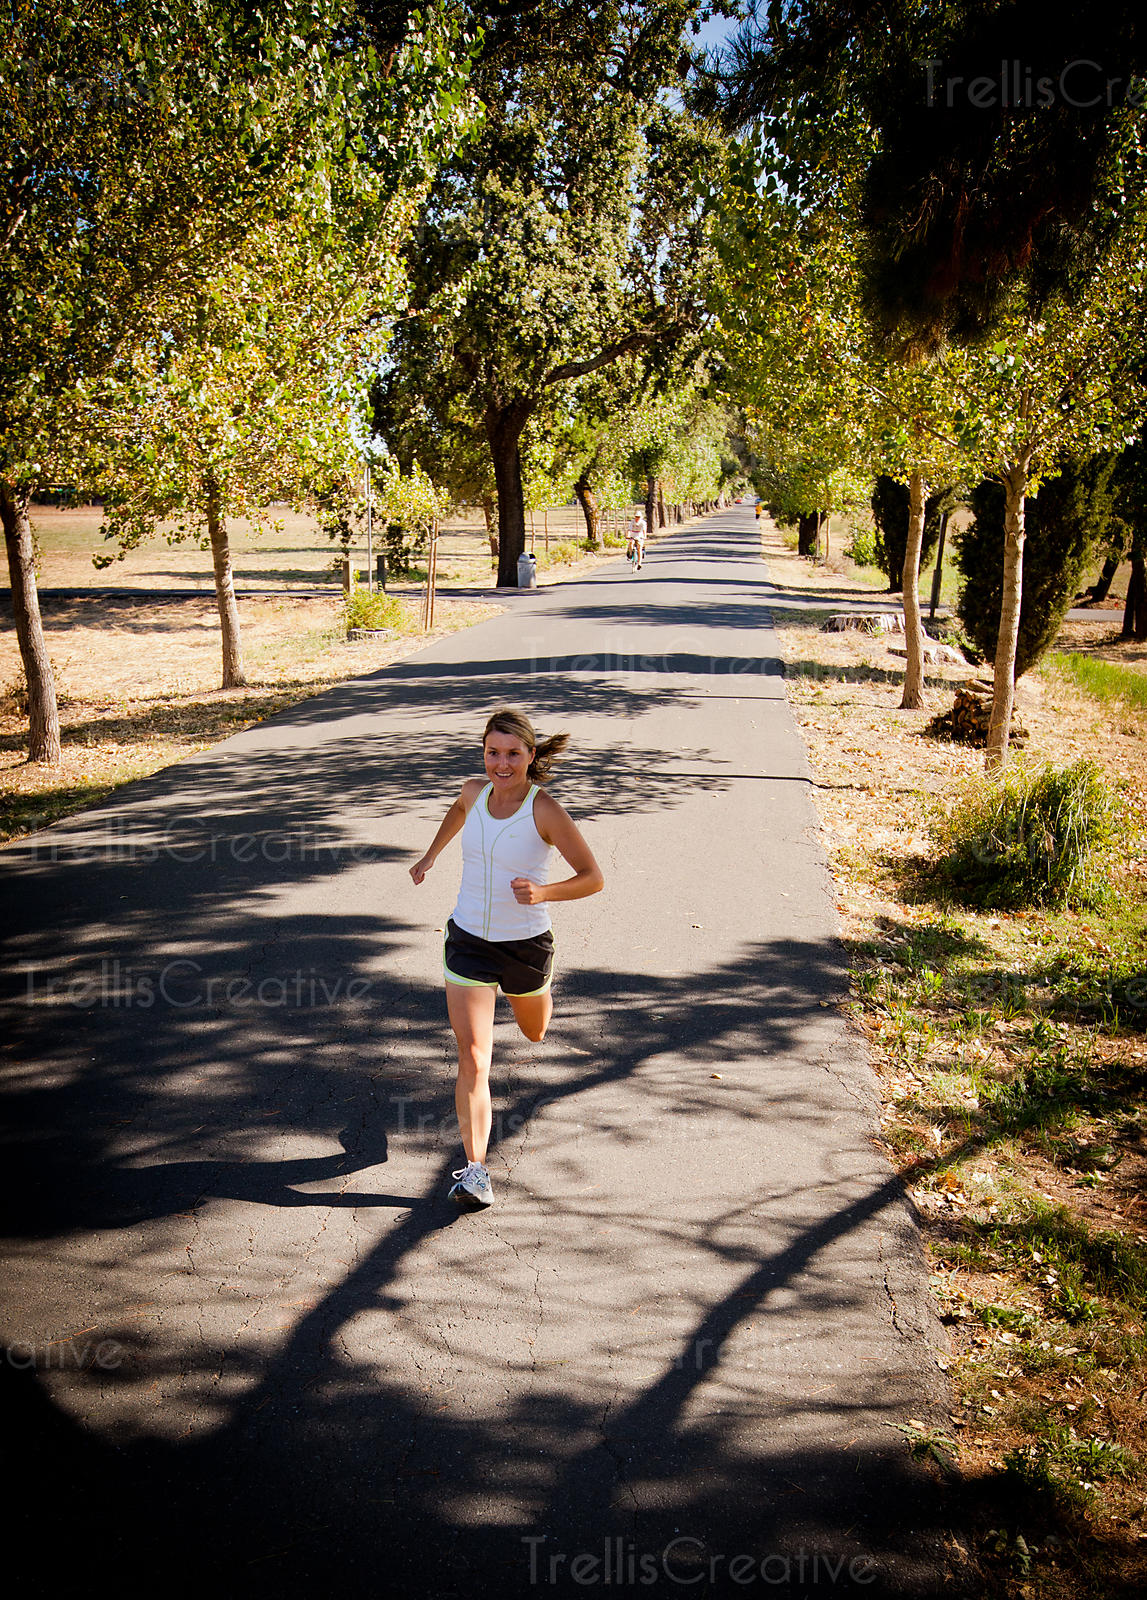 Young female runner jogging down a tree-lined street